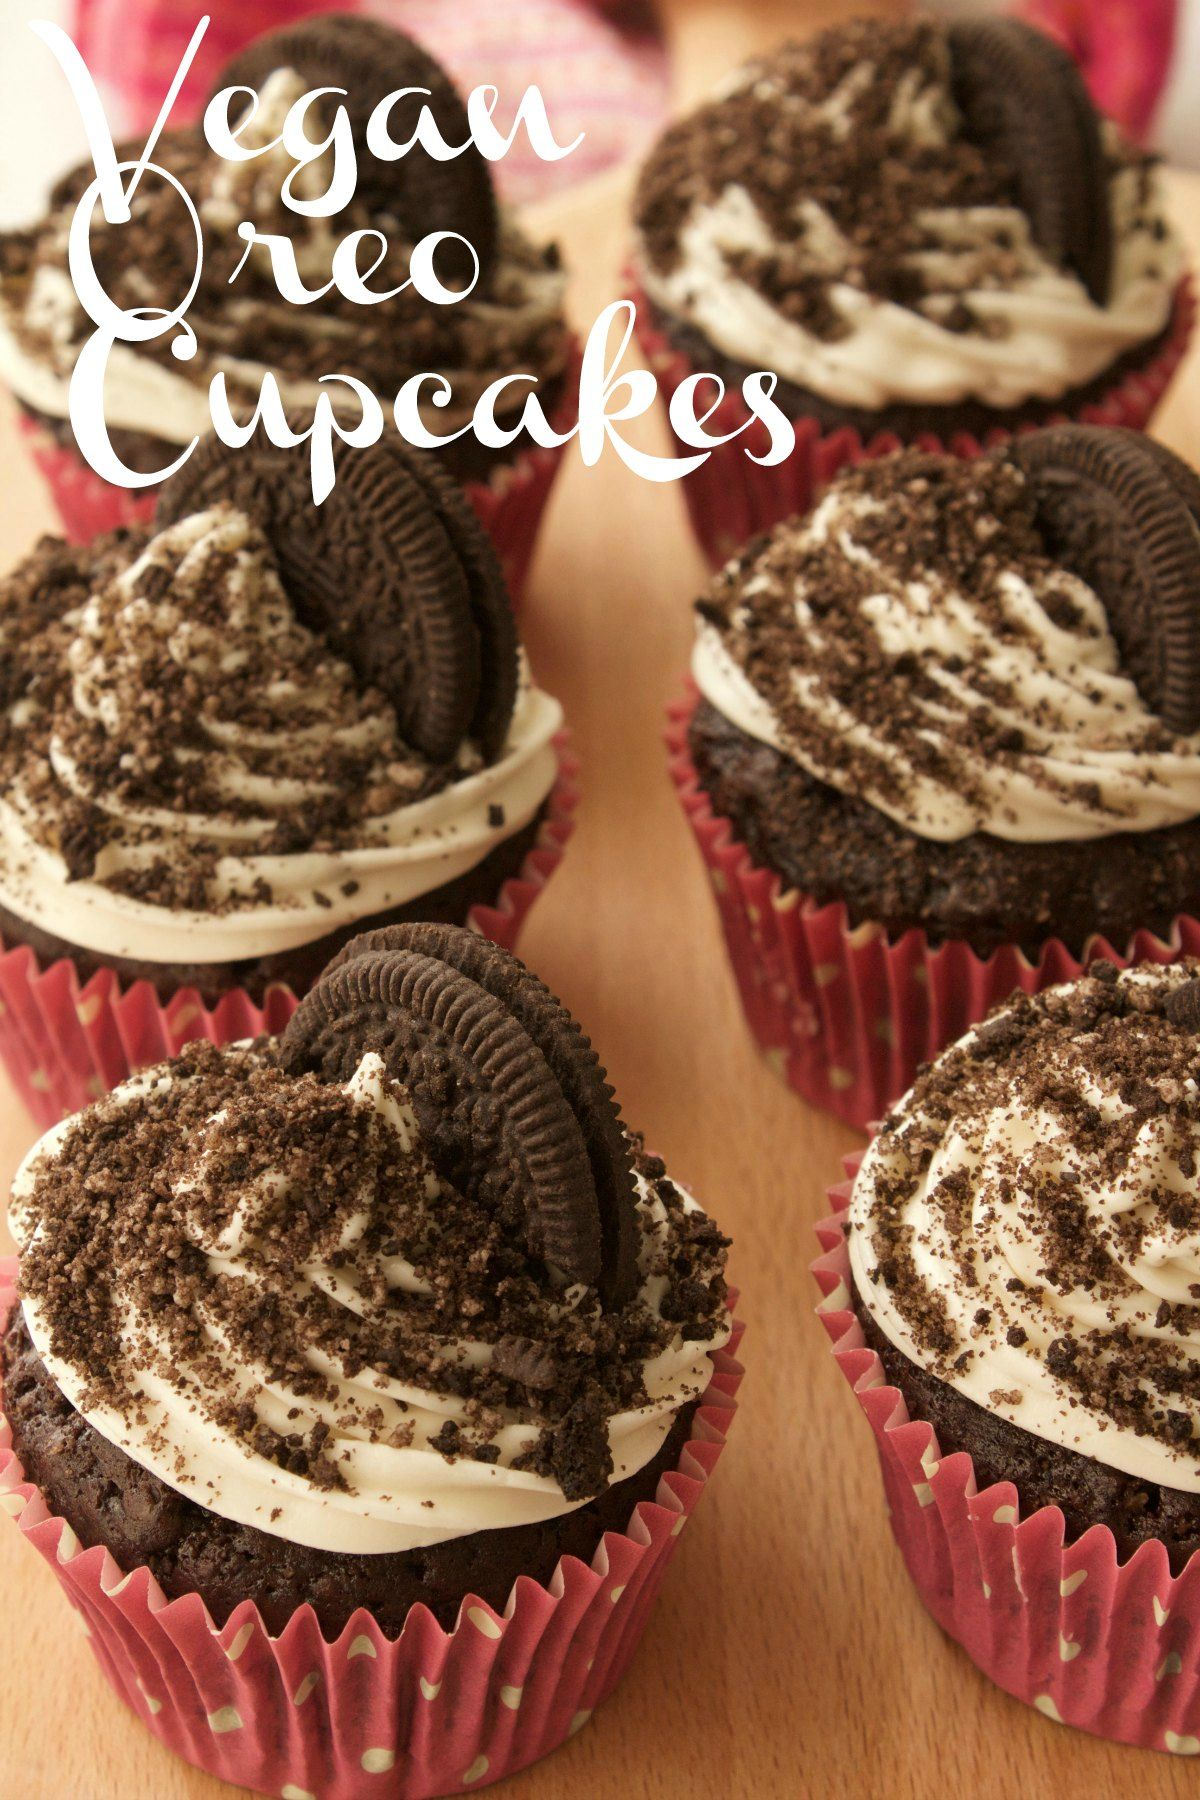 Rich And Moist Vegan Oreo Cupcakes With Vanilla Frosting Oreo Sprinkles And An Entire Oreo Cooki Vegan Chocolate Cupcakes Vegan Cupcakes Vegan Dessert Recipes